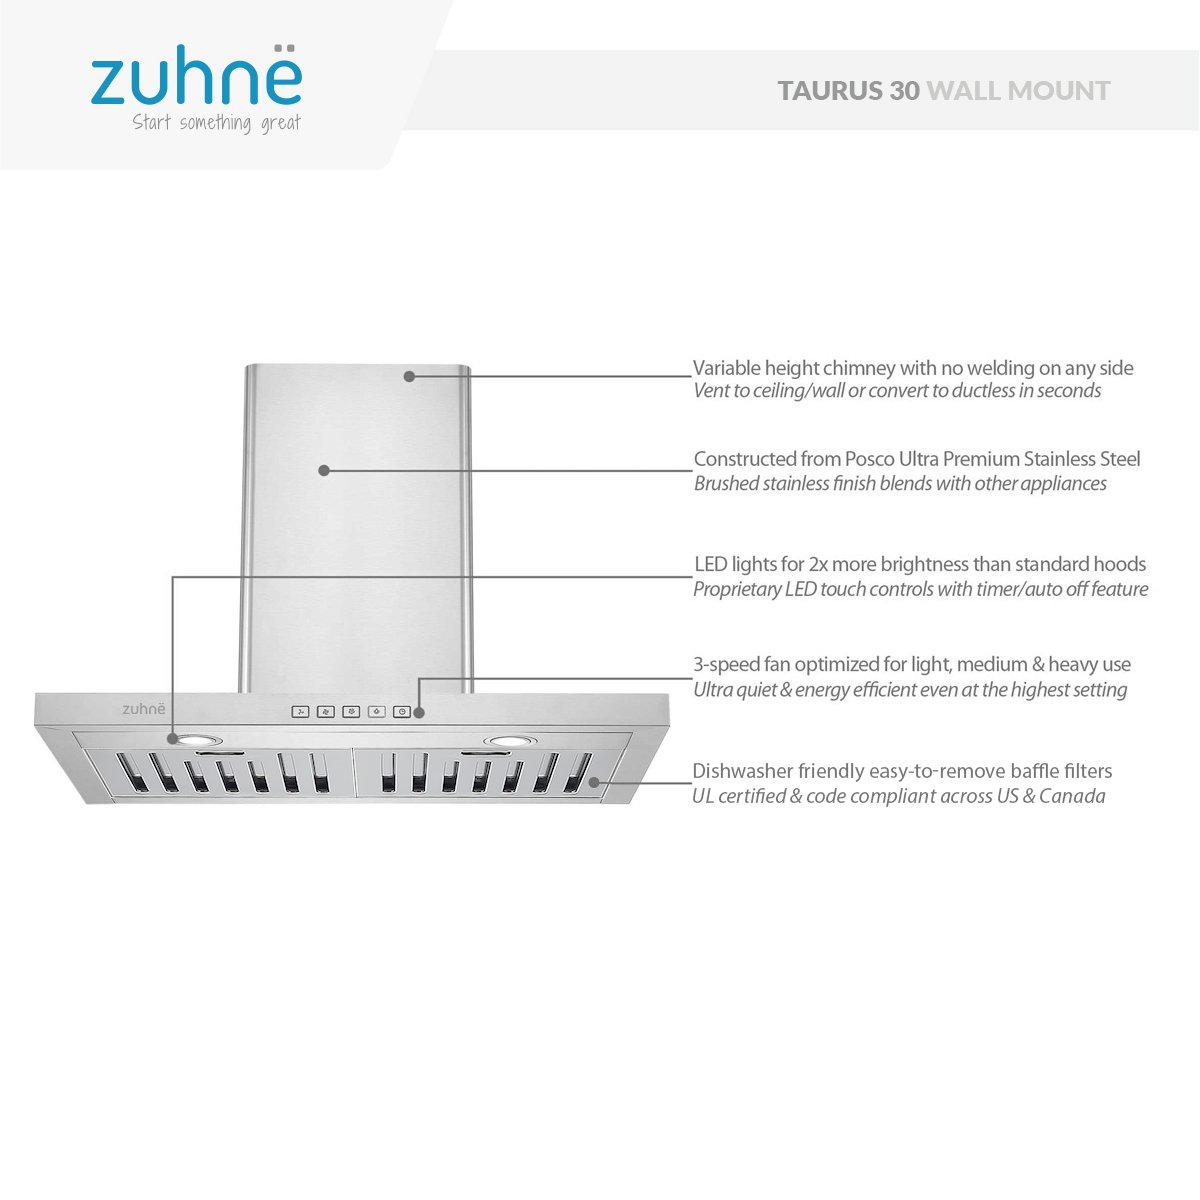 Zuhne Taurus 30 inch Kitchen Wall Mount Vented/ Ductless Stainless Steel Range Hood or Stove Vent with Energy Saving Touch Control & LED Lights by Zuhne (Image #5)